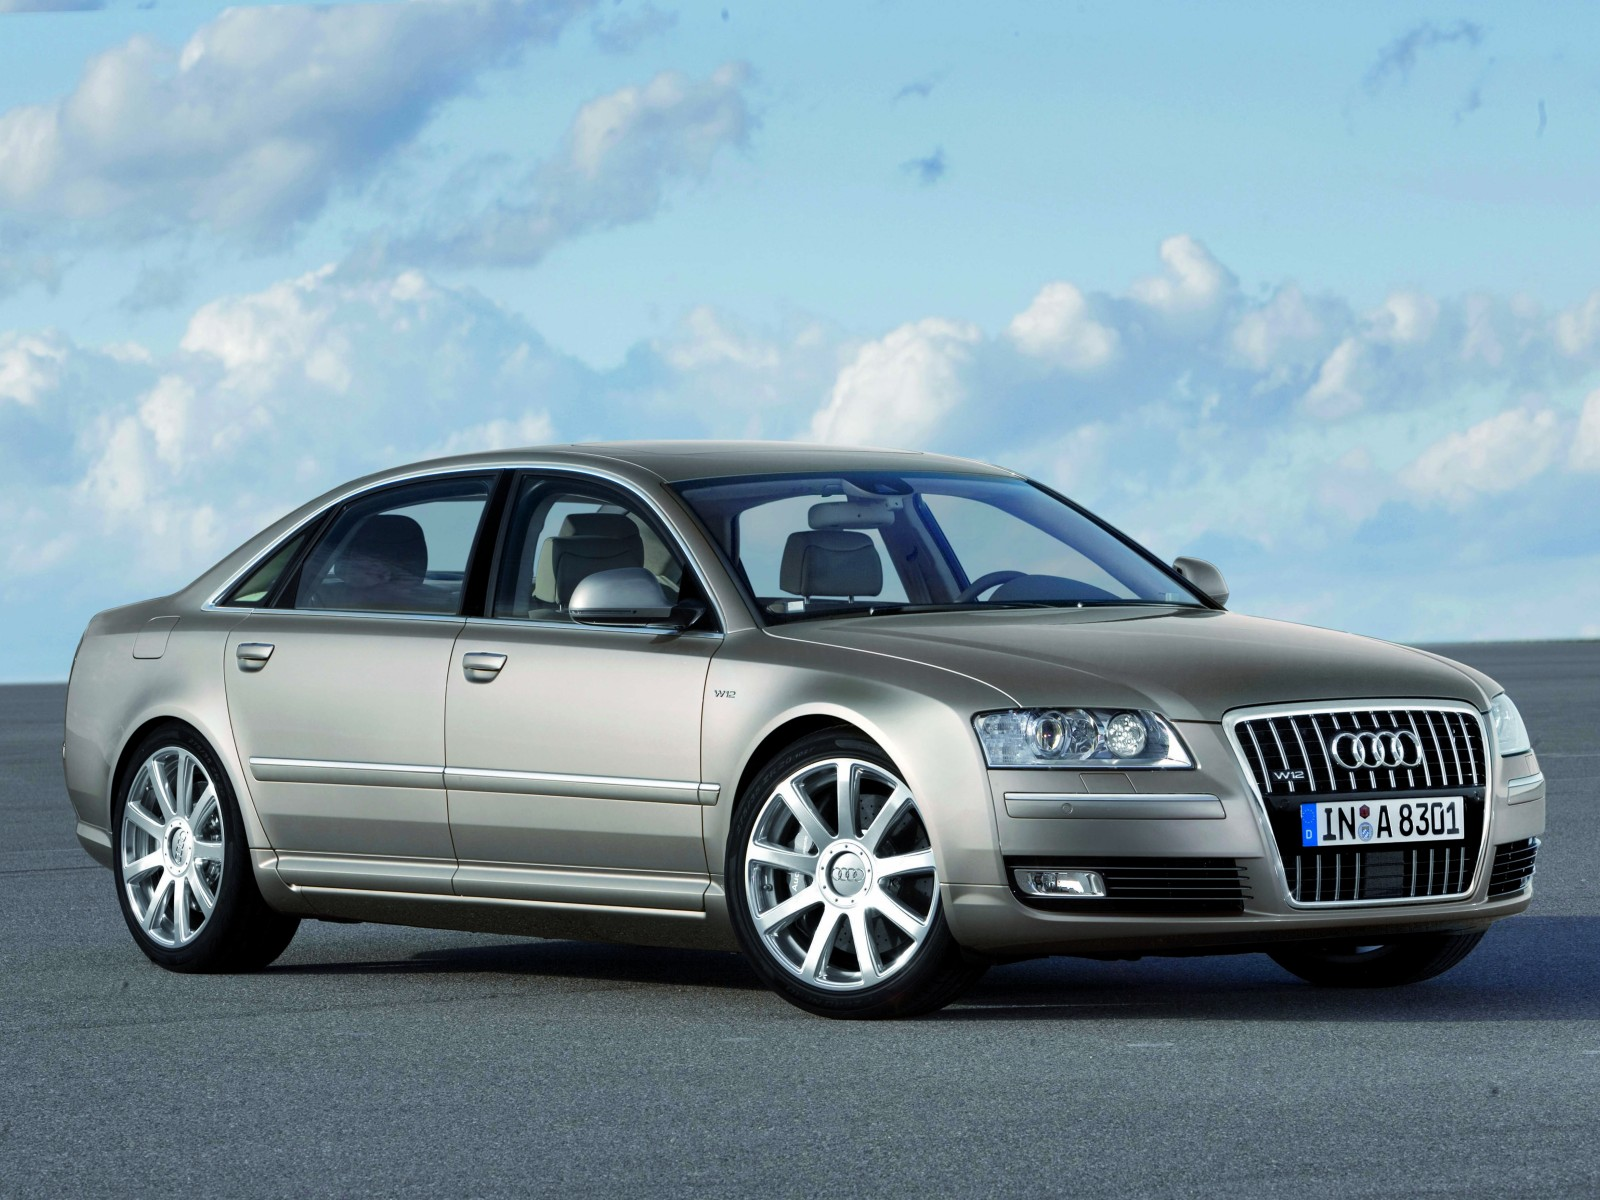 2008 audi a8 w12 quattro wallpapers pictures specifications interiors and exteriors images. Black Bedroom Furniture Sets. Home Design Ideas